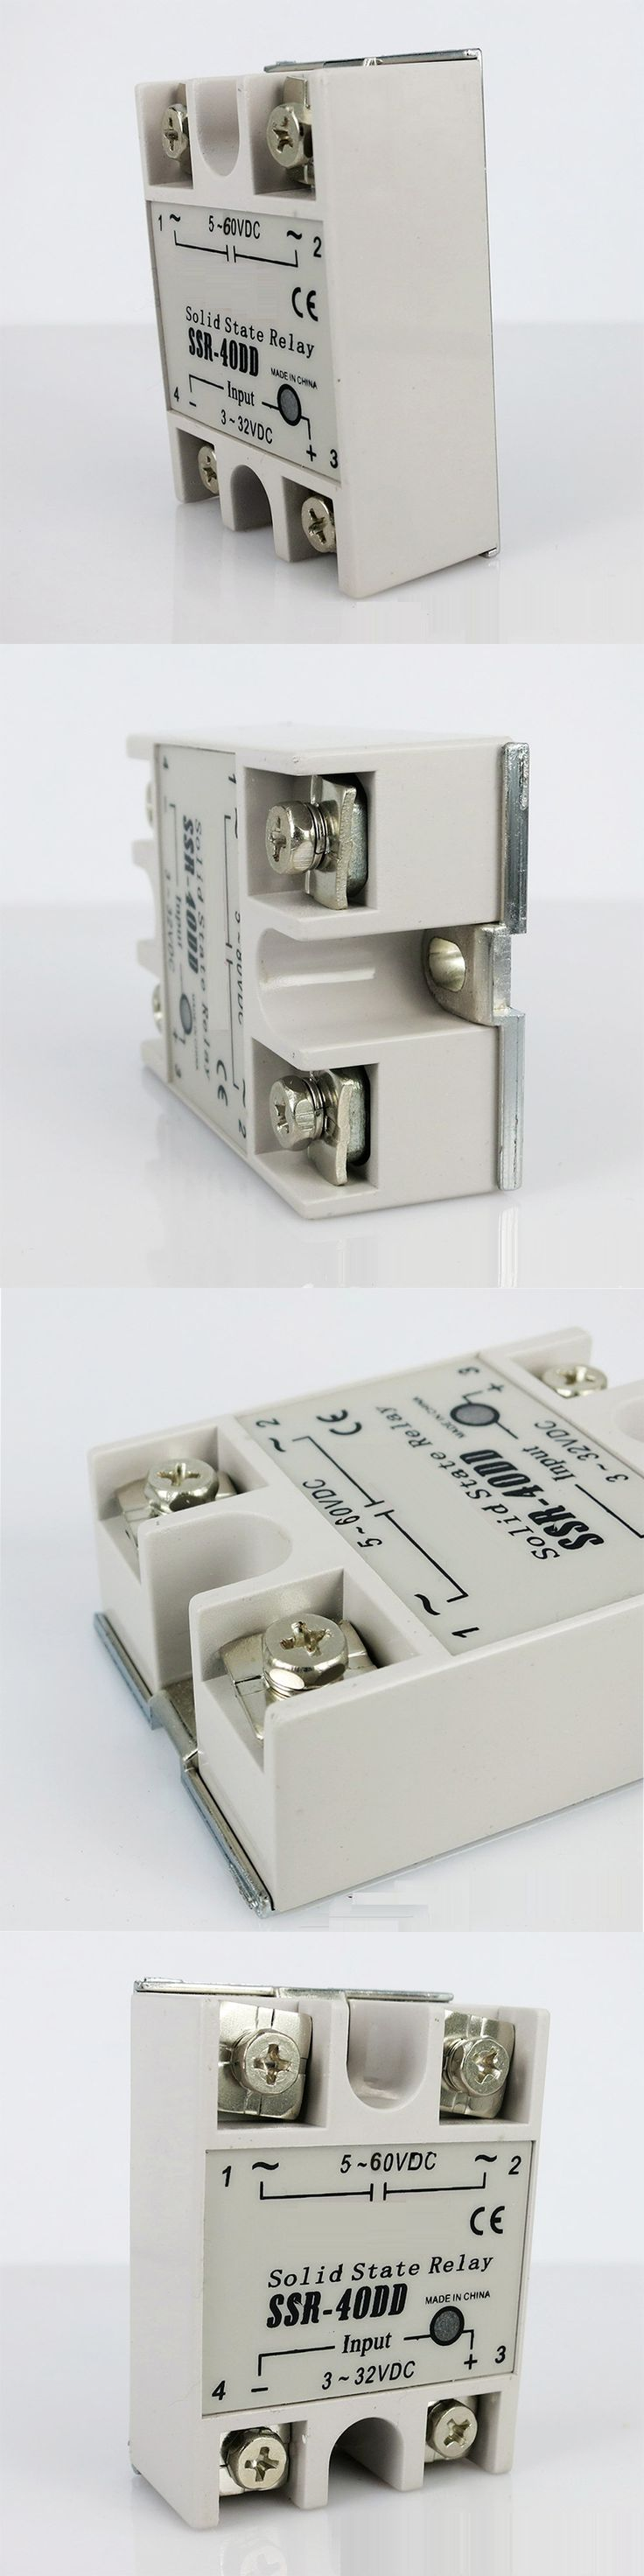 SSR 40DD Single Phase Solid State Relay  actually 3-32 DC TO 5-60 DC 40A DC Control DC